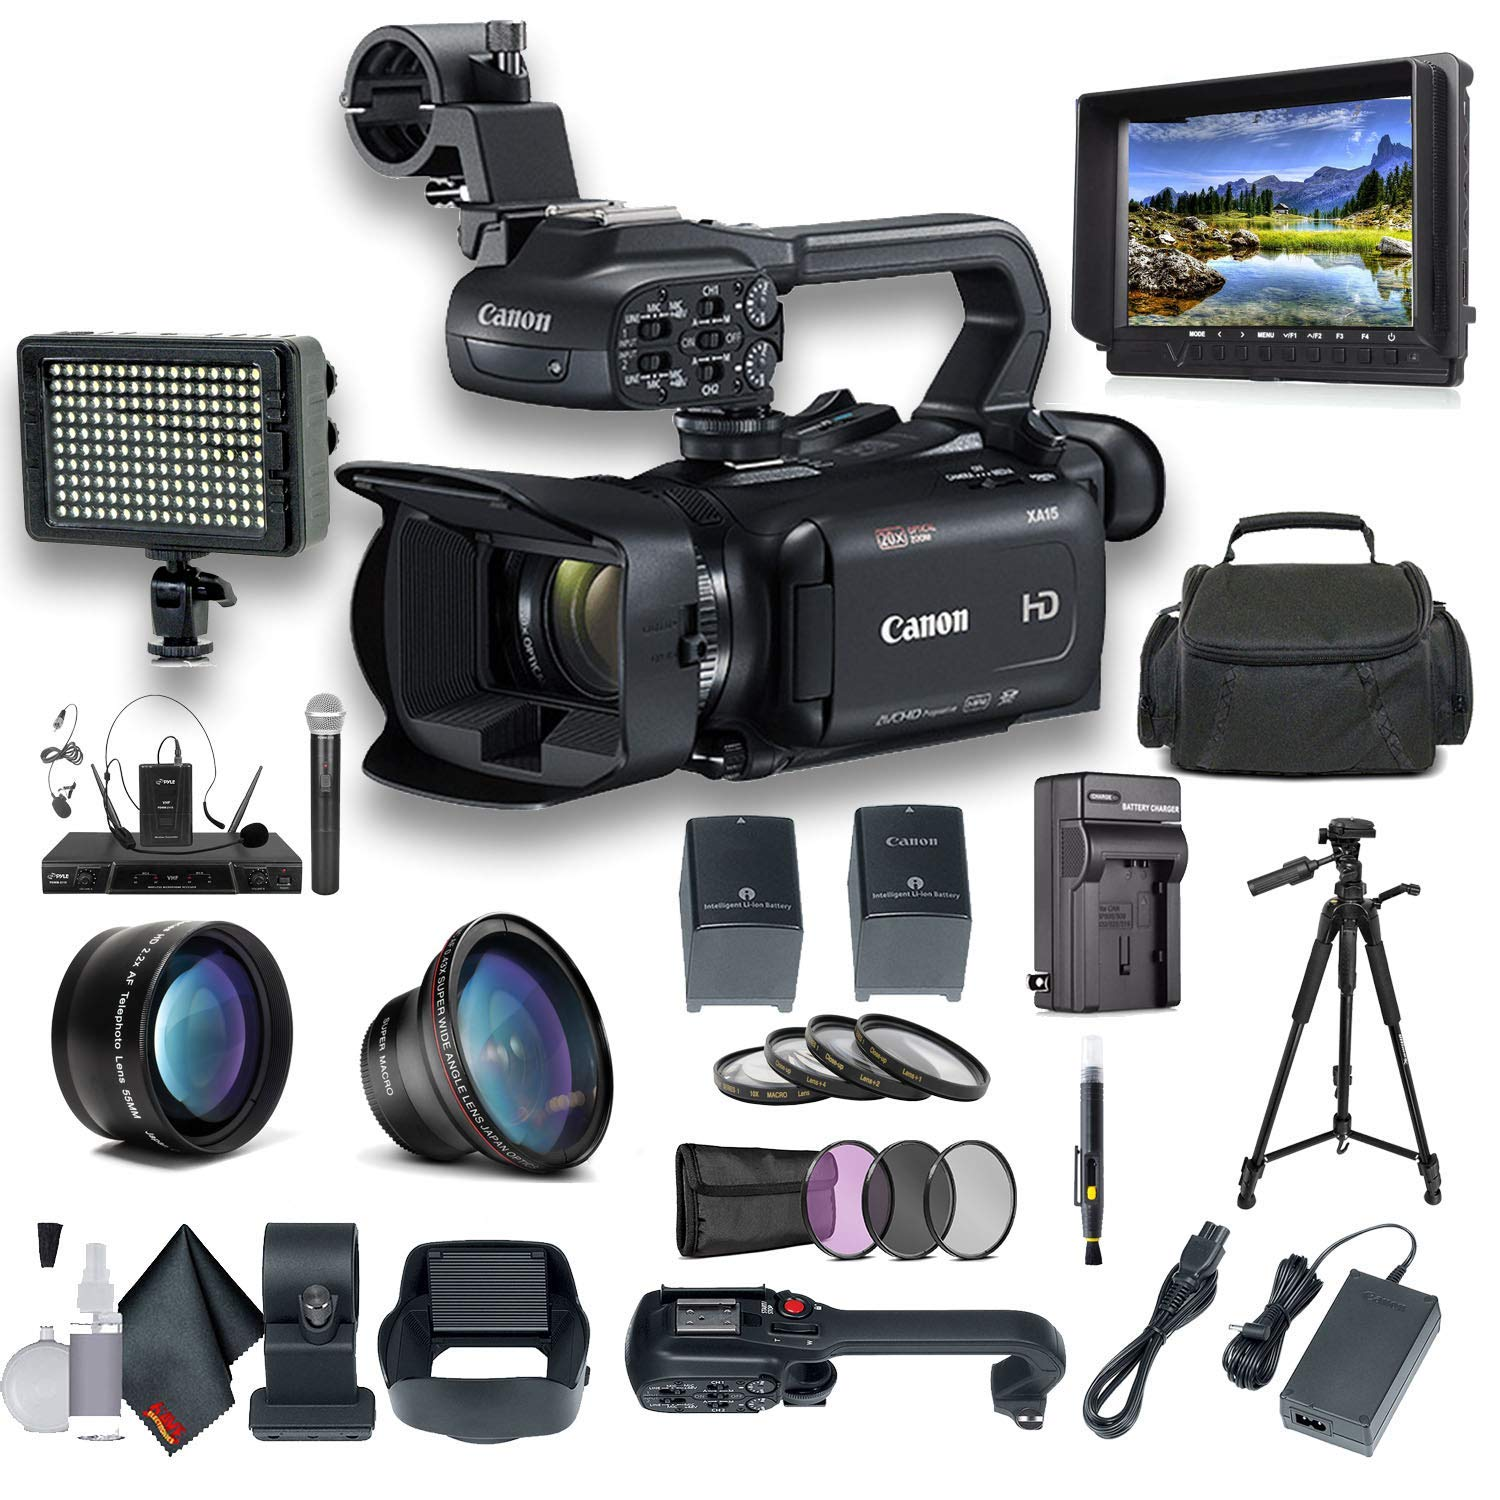 Canon XA15 Compact Full HD Camcorder with SDI, HDMI, and Composite Output Professional Bundle. Includes Extra Battery, Case, LED Light, External Monitor, Mic, Tripod and More by Canon (6AVE)